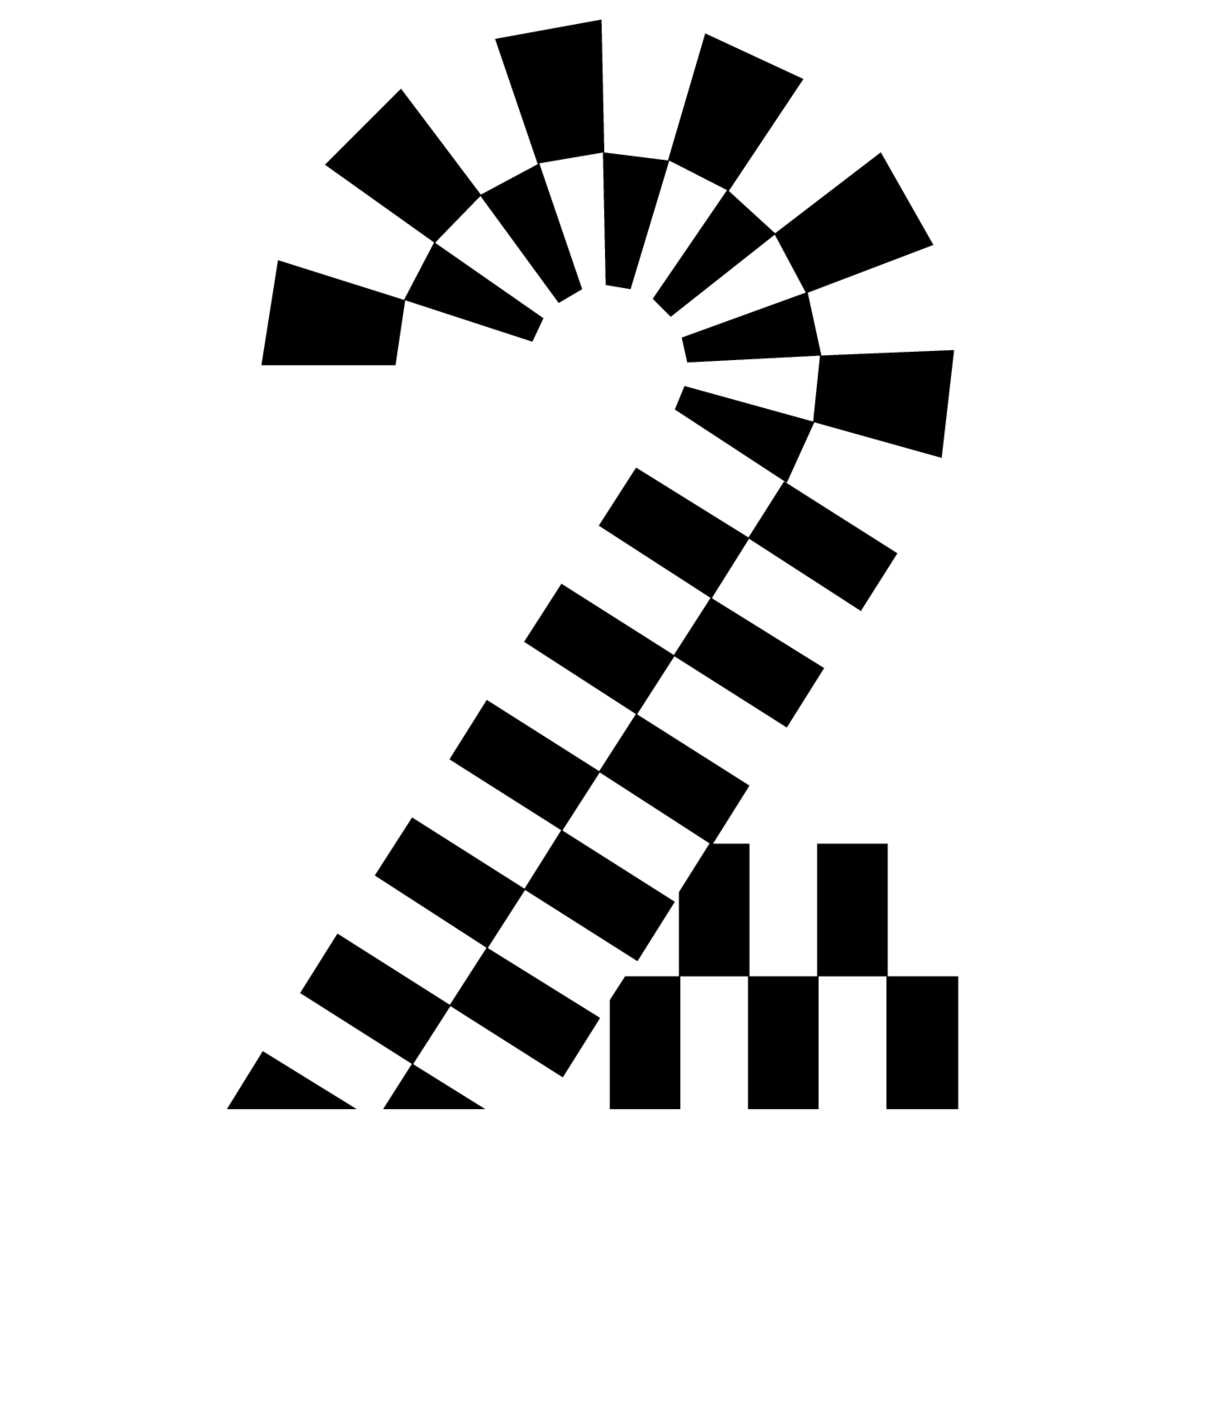 pattern-project-letters-27-1220x1407px